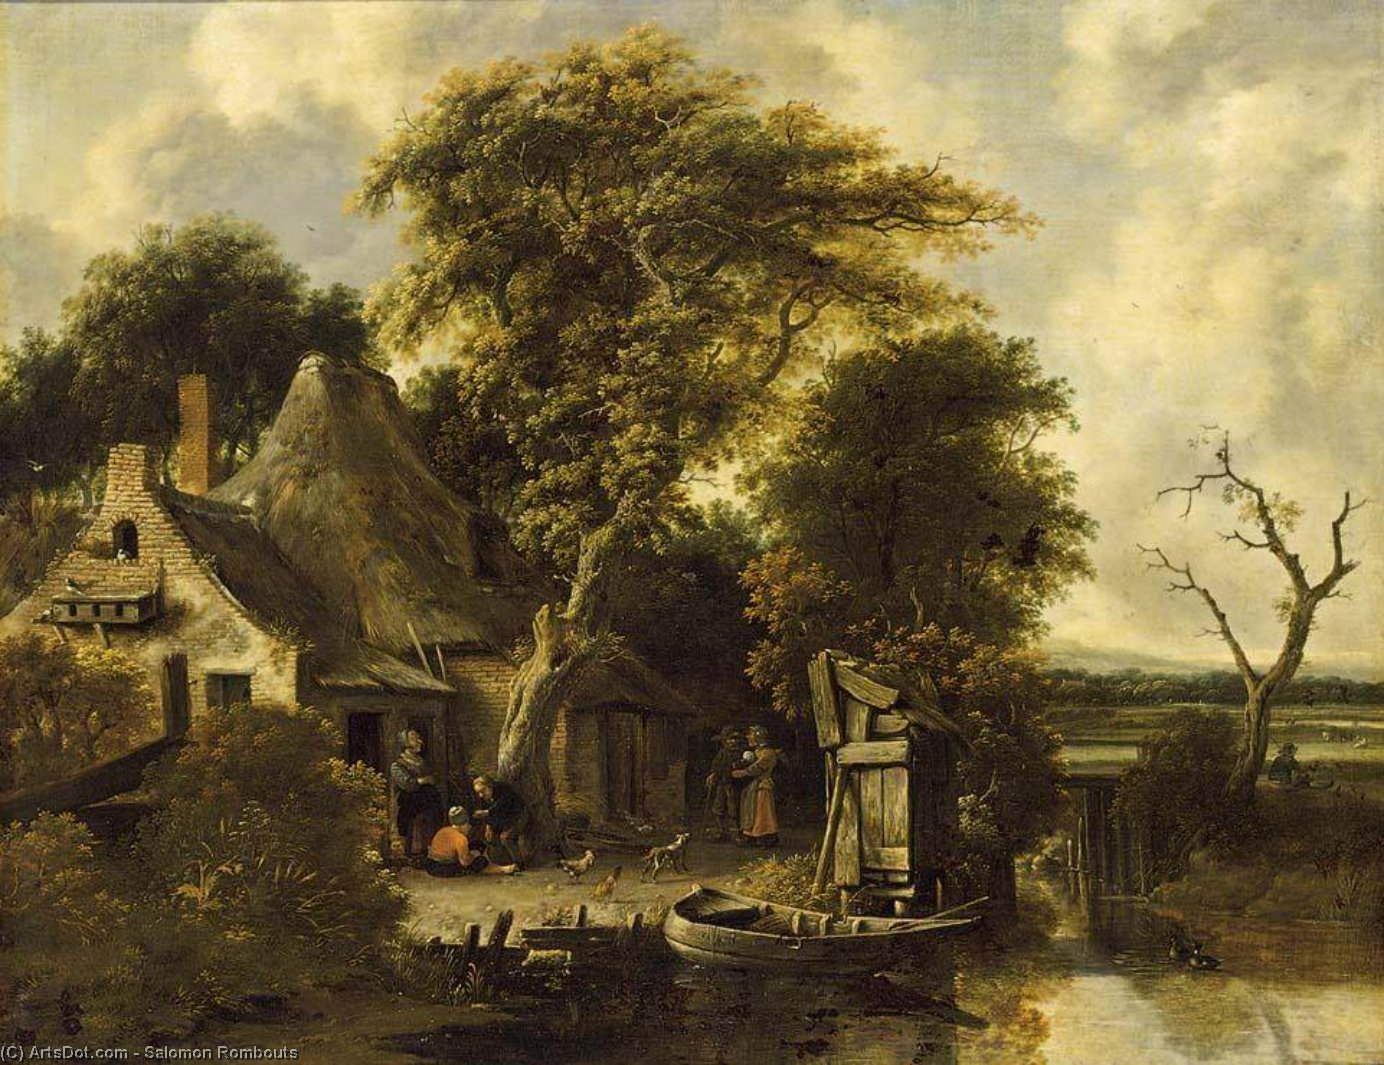 Wikioo.org - The Encyclopedia of Fine Arts - Painting, Artwork by Salomon Rombouts - Wooded Landscape